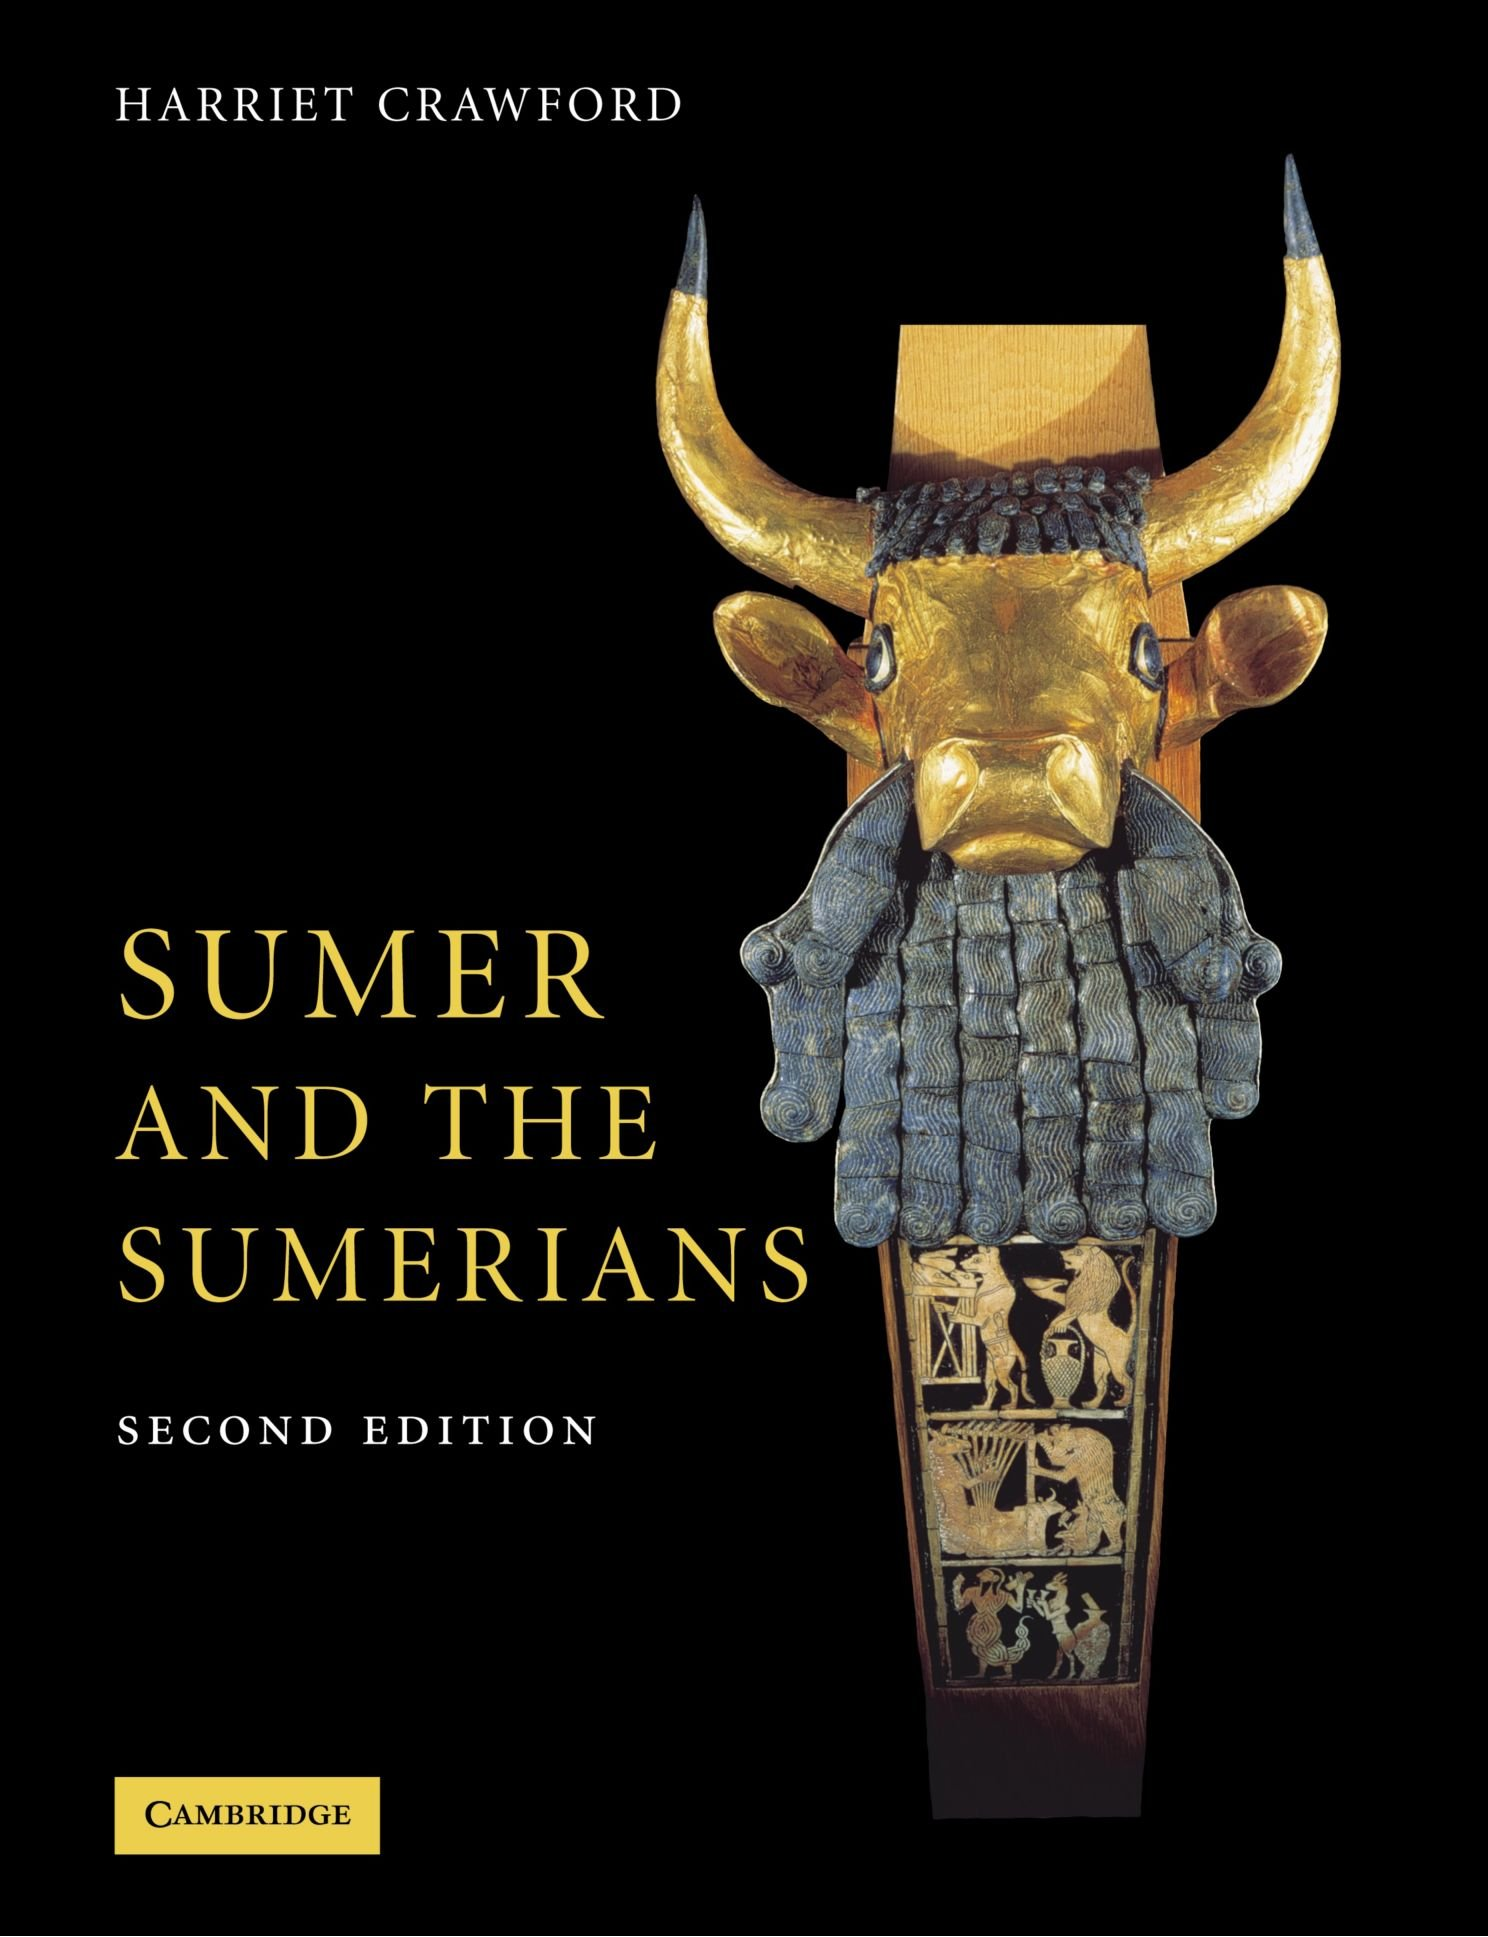 CRAWFORD, H. E. W. Sumer and the Sumerians. 2. ed. Cambridge: Cambridge University Press, 2014, 264 p.